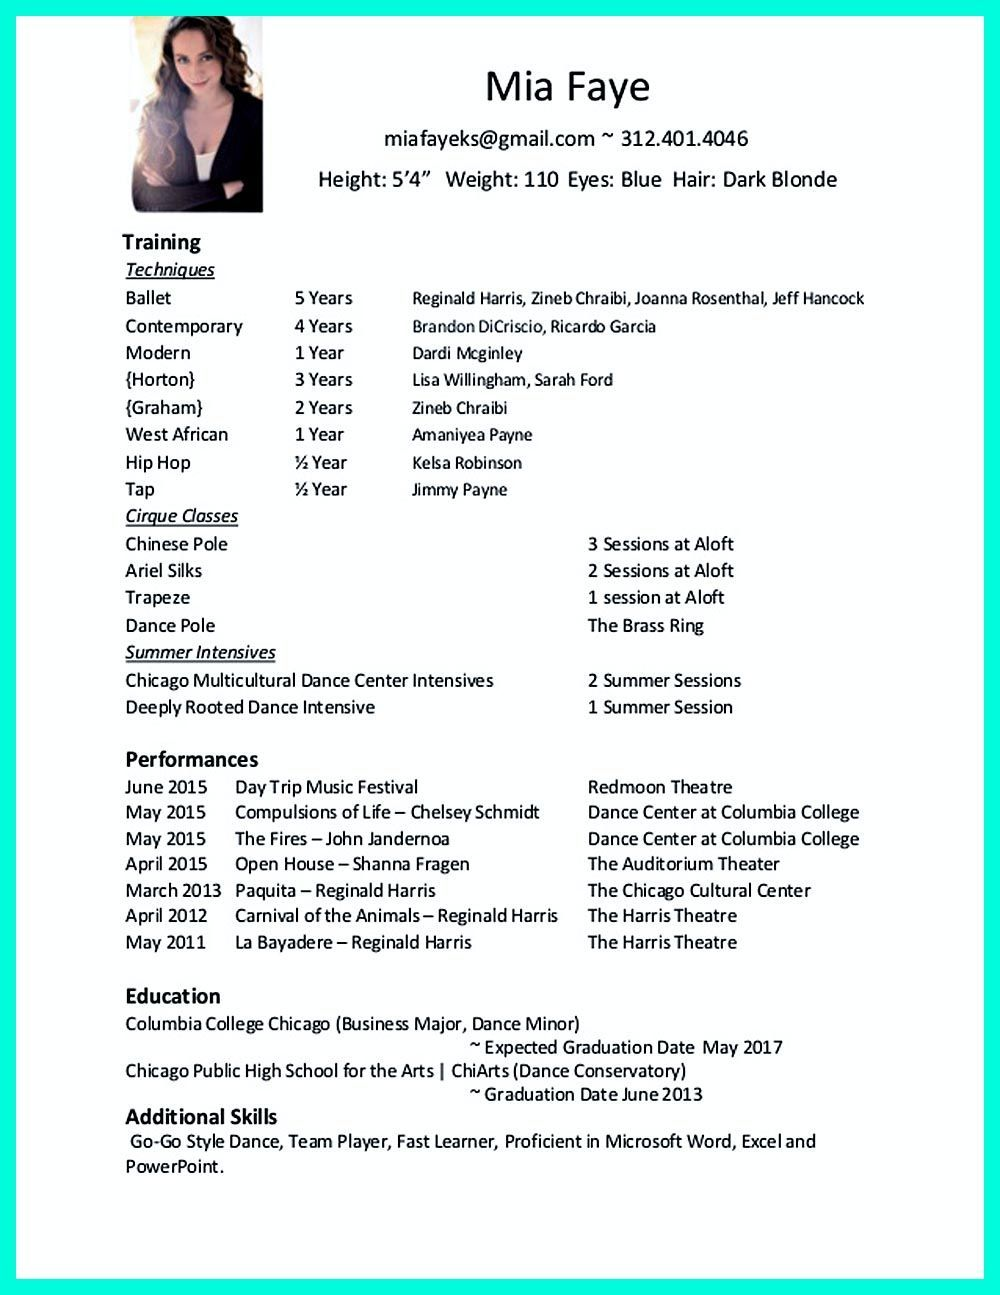 resume format for dance teacher free templates classical of tips hipaa experience skills Resume Resume Format For Classical Dance Teacher